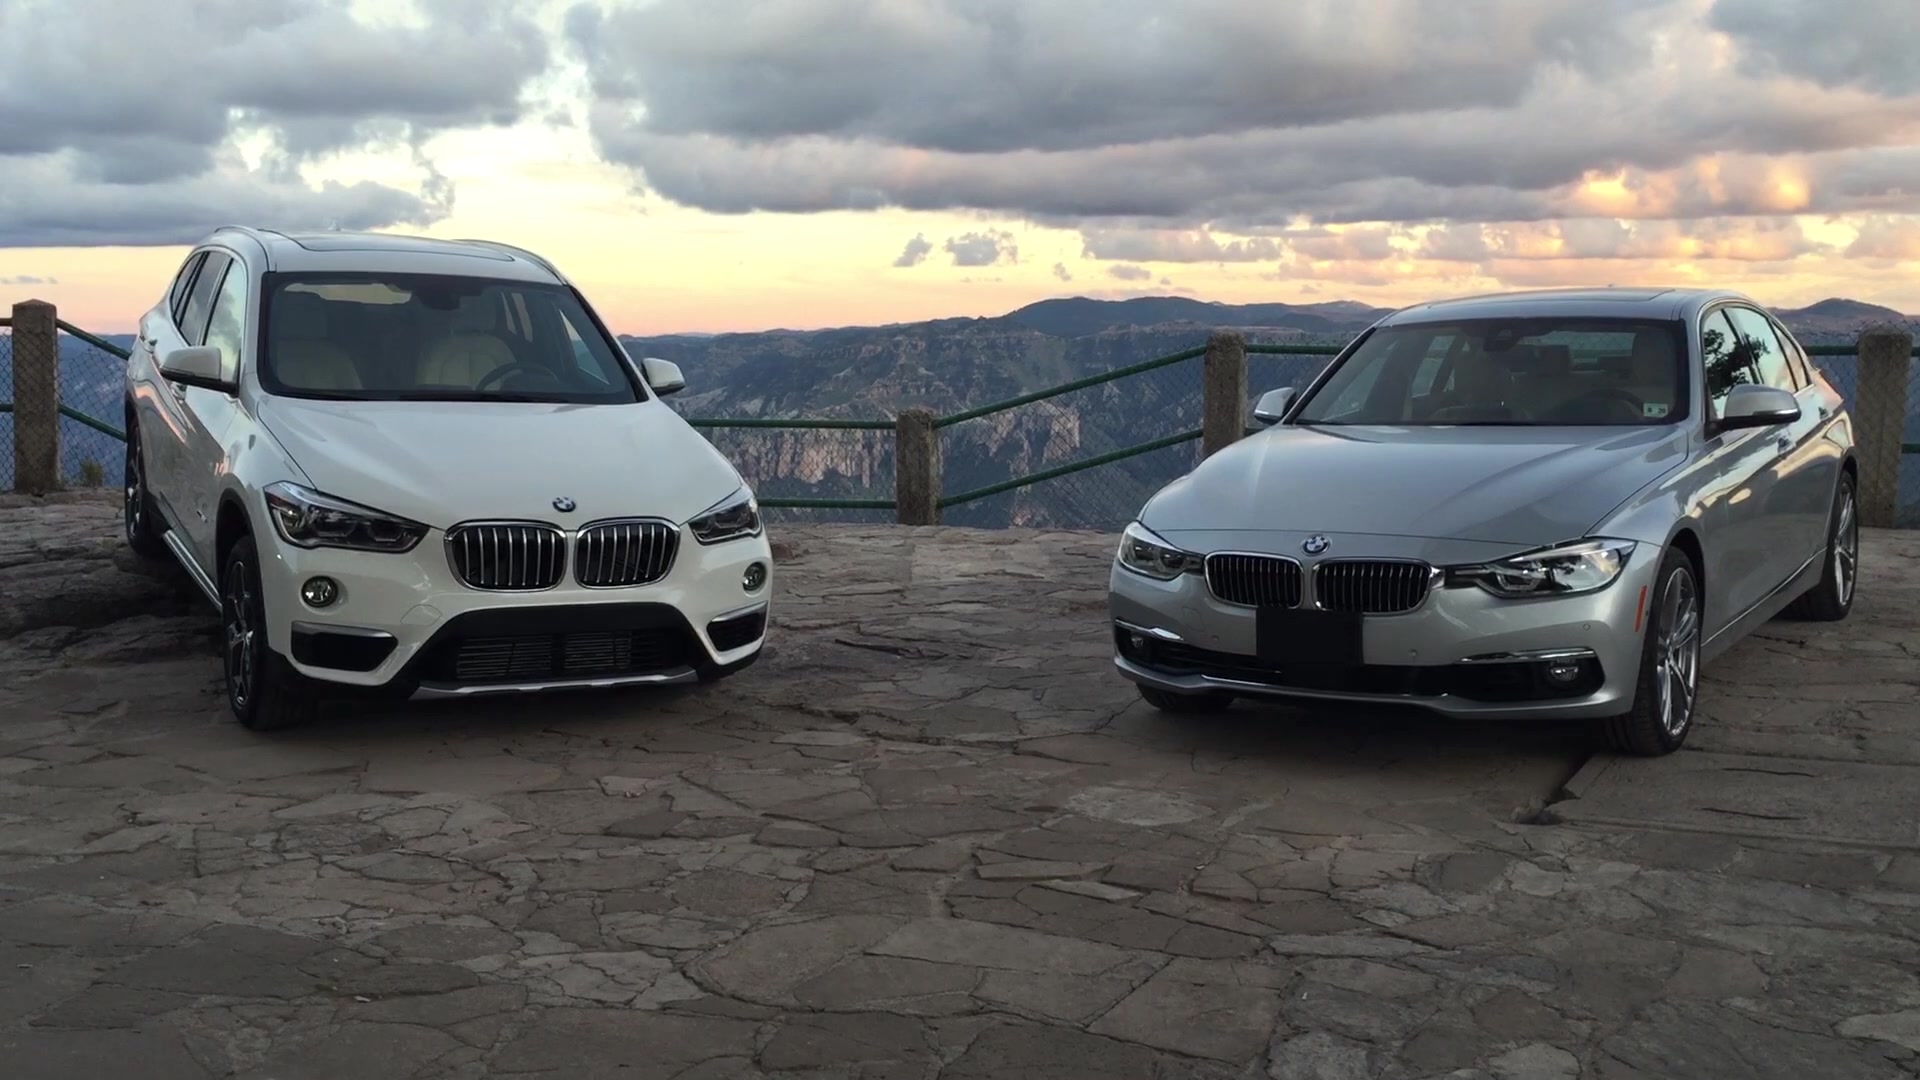 2016 BMW 3 Series and X1 in Mexico | On Location